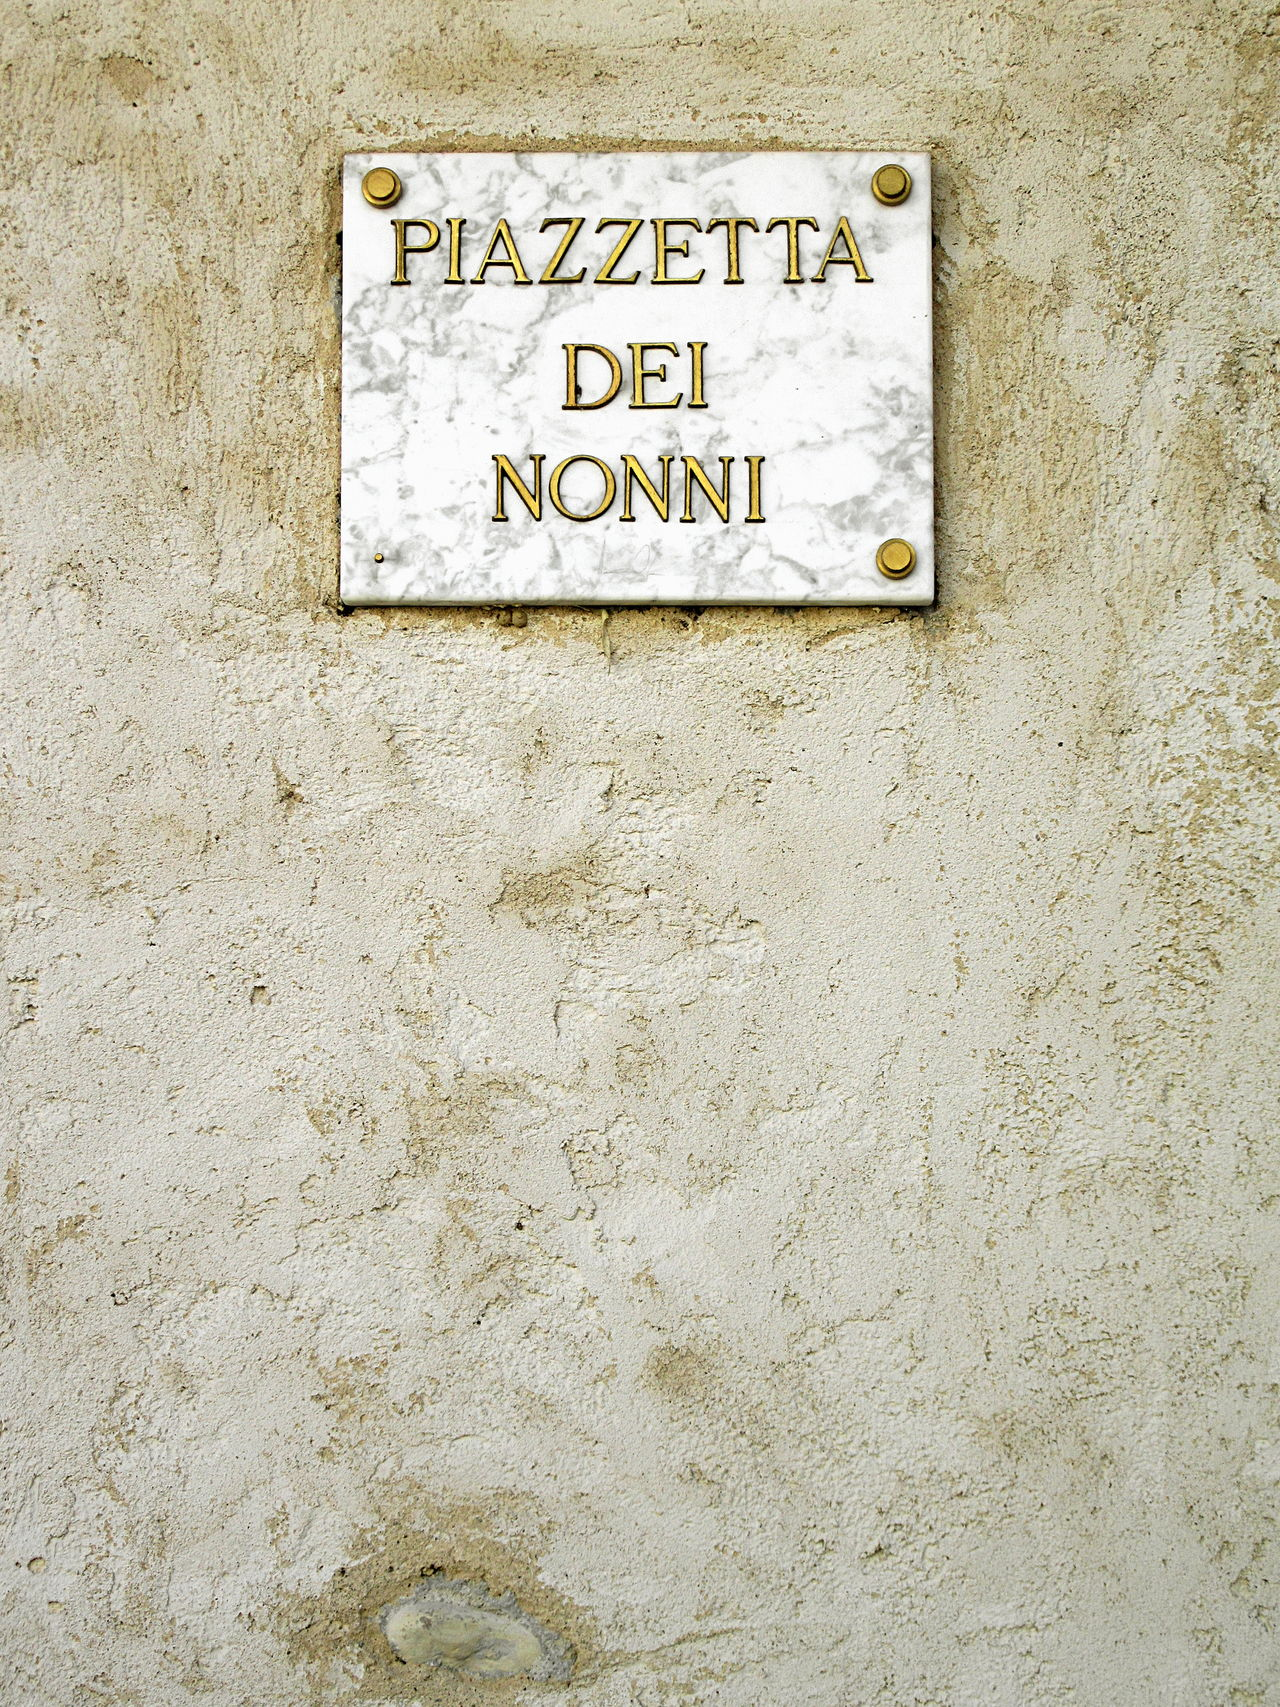 "Full frame shot of old weathered concrete wall with marble plaque with ""Piazzetta dei nonni"" sign (Italian for ""Grandparents' square"") Architecture ArchiTexture Close-up Communication Day Grandparents Marble No People Old Outdoors Place Plaque Sign Square Textures And Surfaces Wall Wall - Building Feature Weathered"